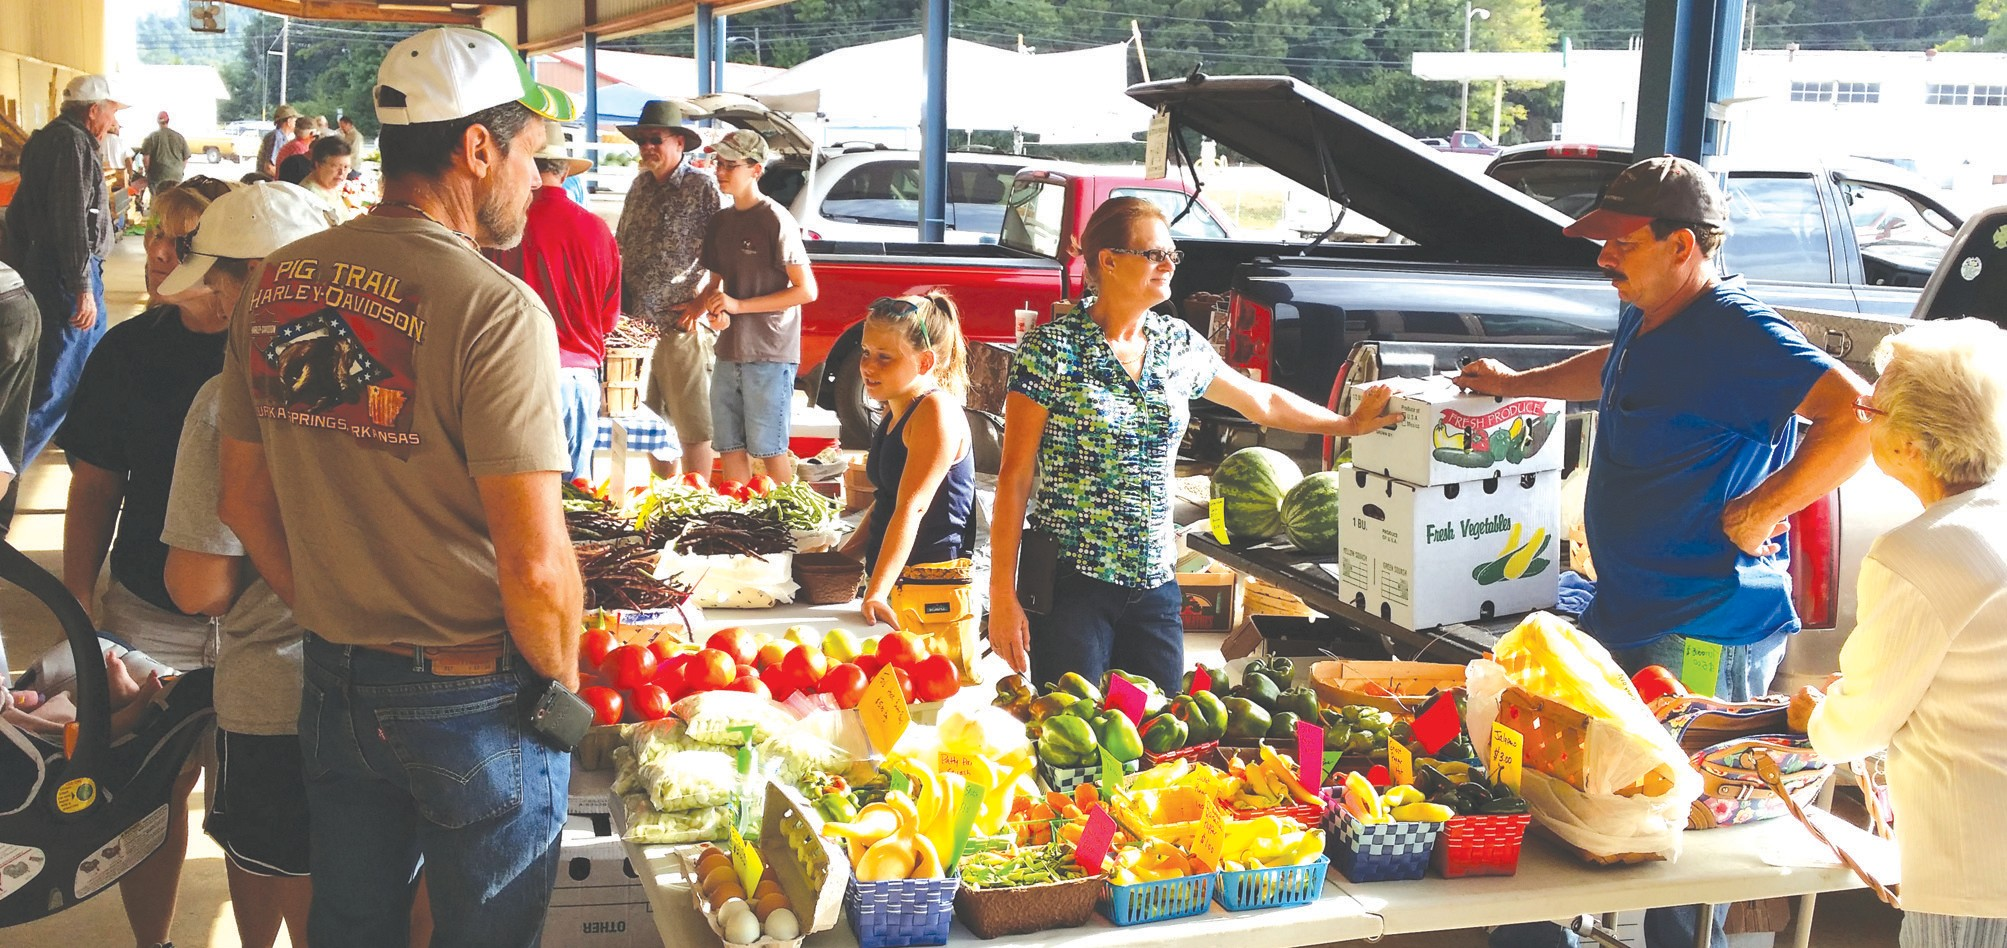 On Saturday, Blount County farmers gathered at the Blount County-Oneonta Agri-Business Center for the annual Special Day at the Farmers Market. 'I believe the Special Day was fantastic,' said Blount County-Oneonta Agri-Business Center executive director Chase Moore.'We had a wonderful turnout and I can't thank the farmers enough for everything they do. All of their hard work growing and selling produce, we wouldn't have food to eat or clothes to wear without them.' Moore thanked businesses who donated items for door prizes, the Extension Office for giving out how-to-can literature, Coca Cola for donating drinks, and WCRL for broadcasting live. Open Tuesday, Thursday, and Saturday from 7 a.m. to 1 p.m., the Farmers Market will continue through the last Saturday in October. – Nicole Singleton